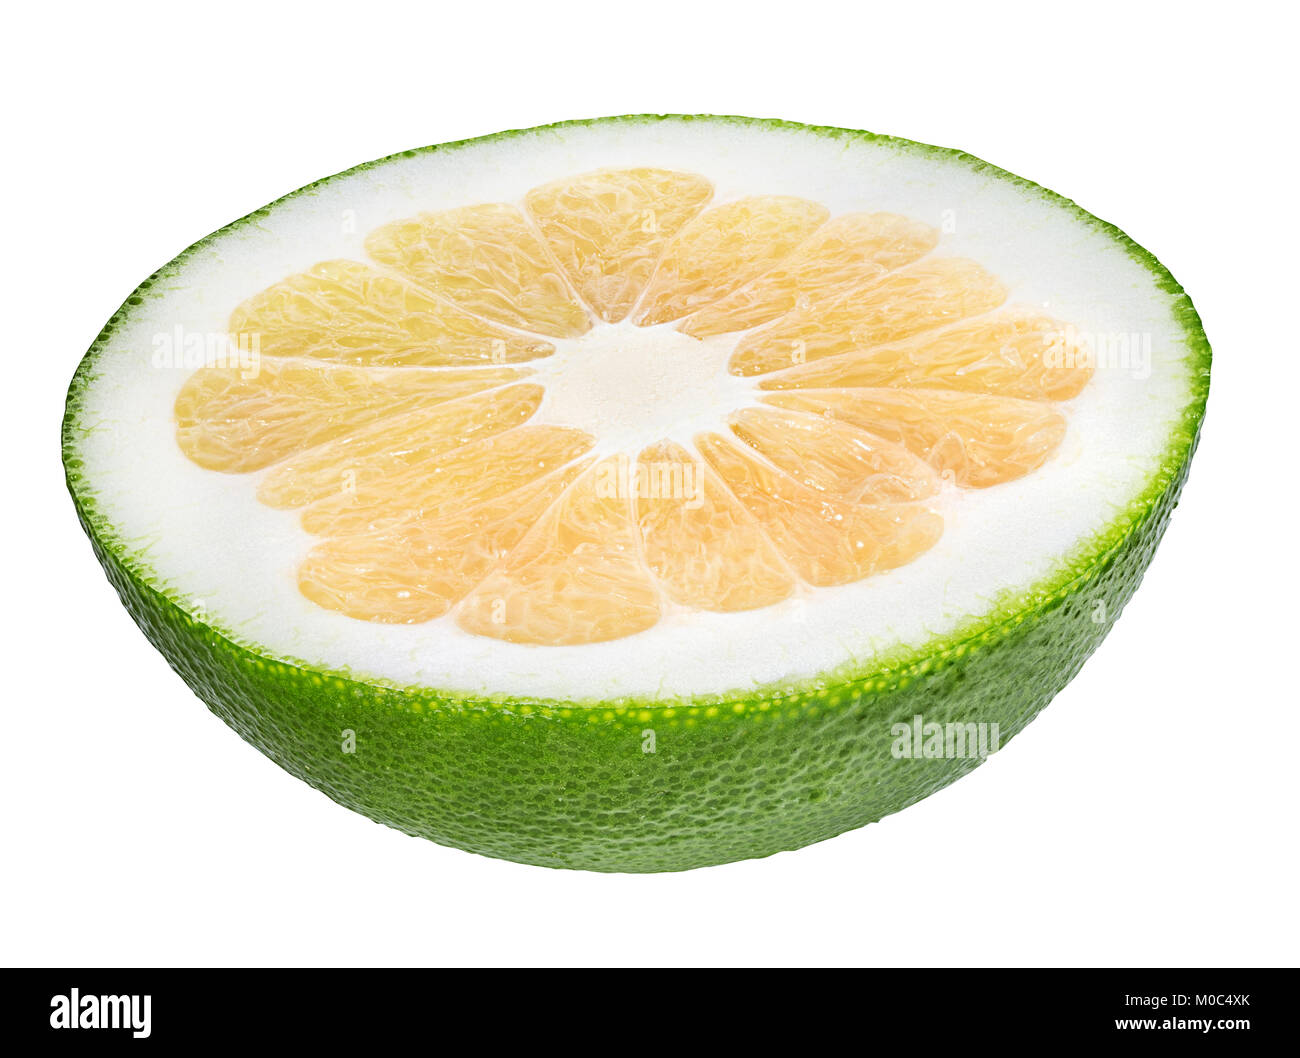 Citrus Sweetie or Pomelit, oroblanco isolated on white background - Stock Image